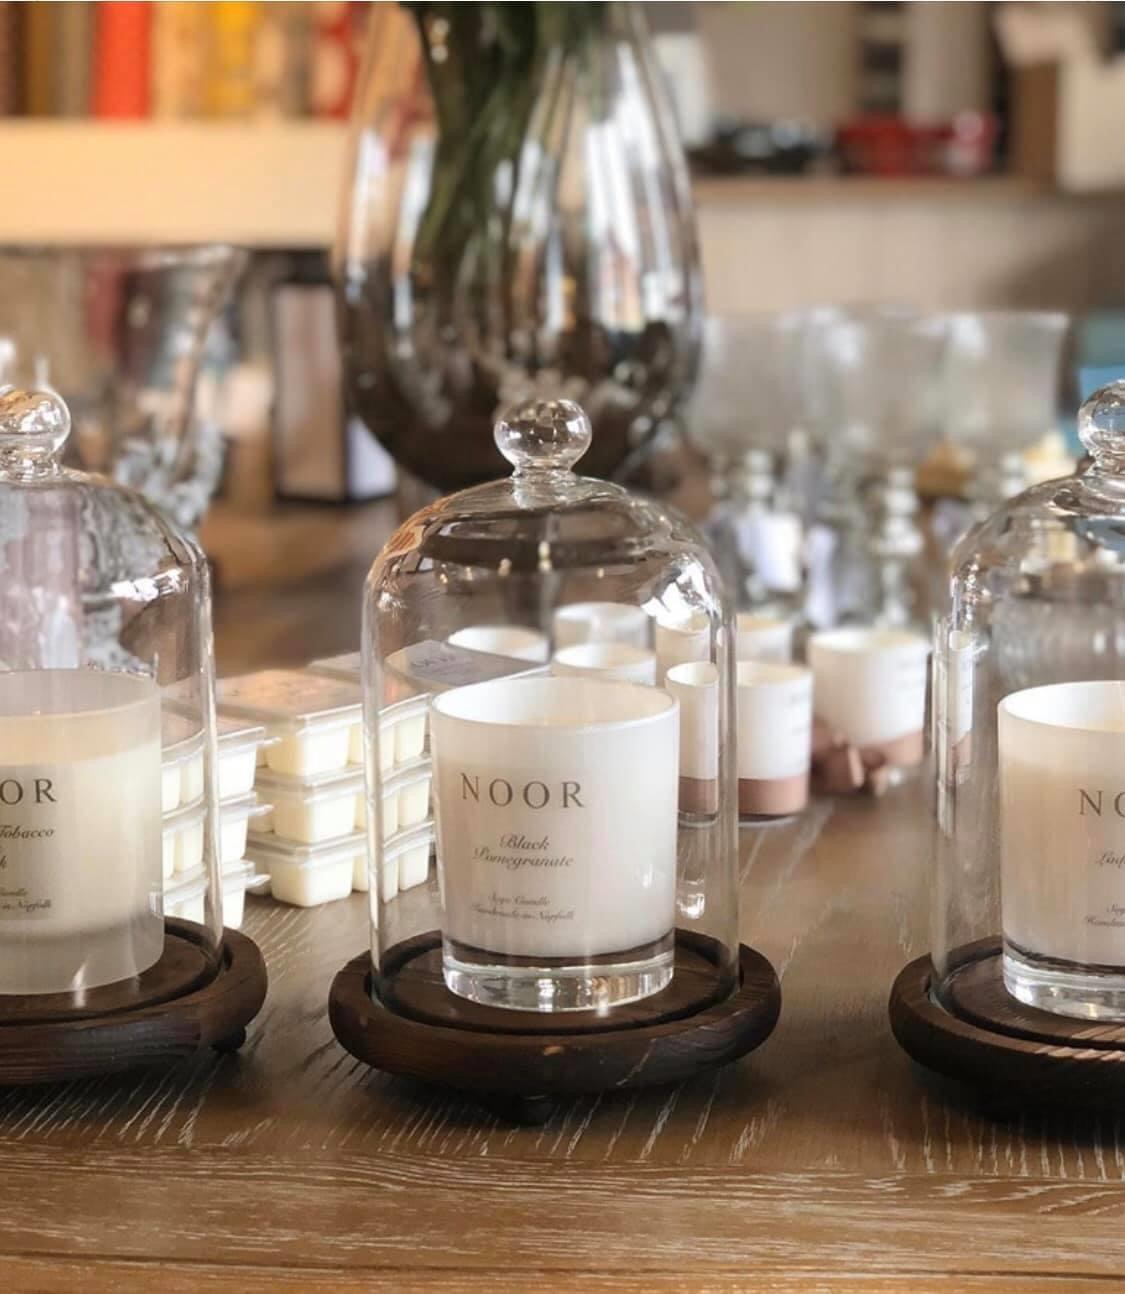 Luxury candle in bergamot and English pear